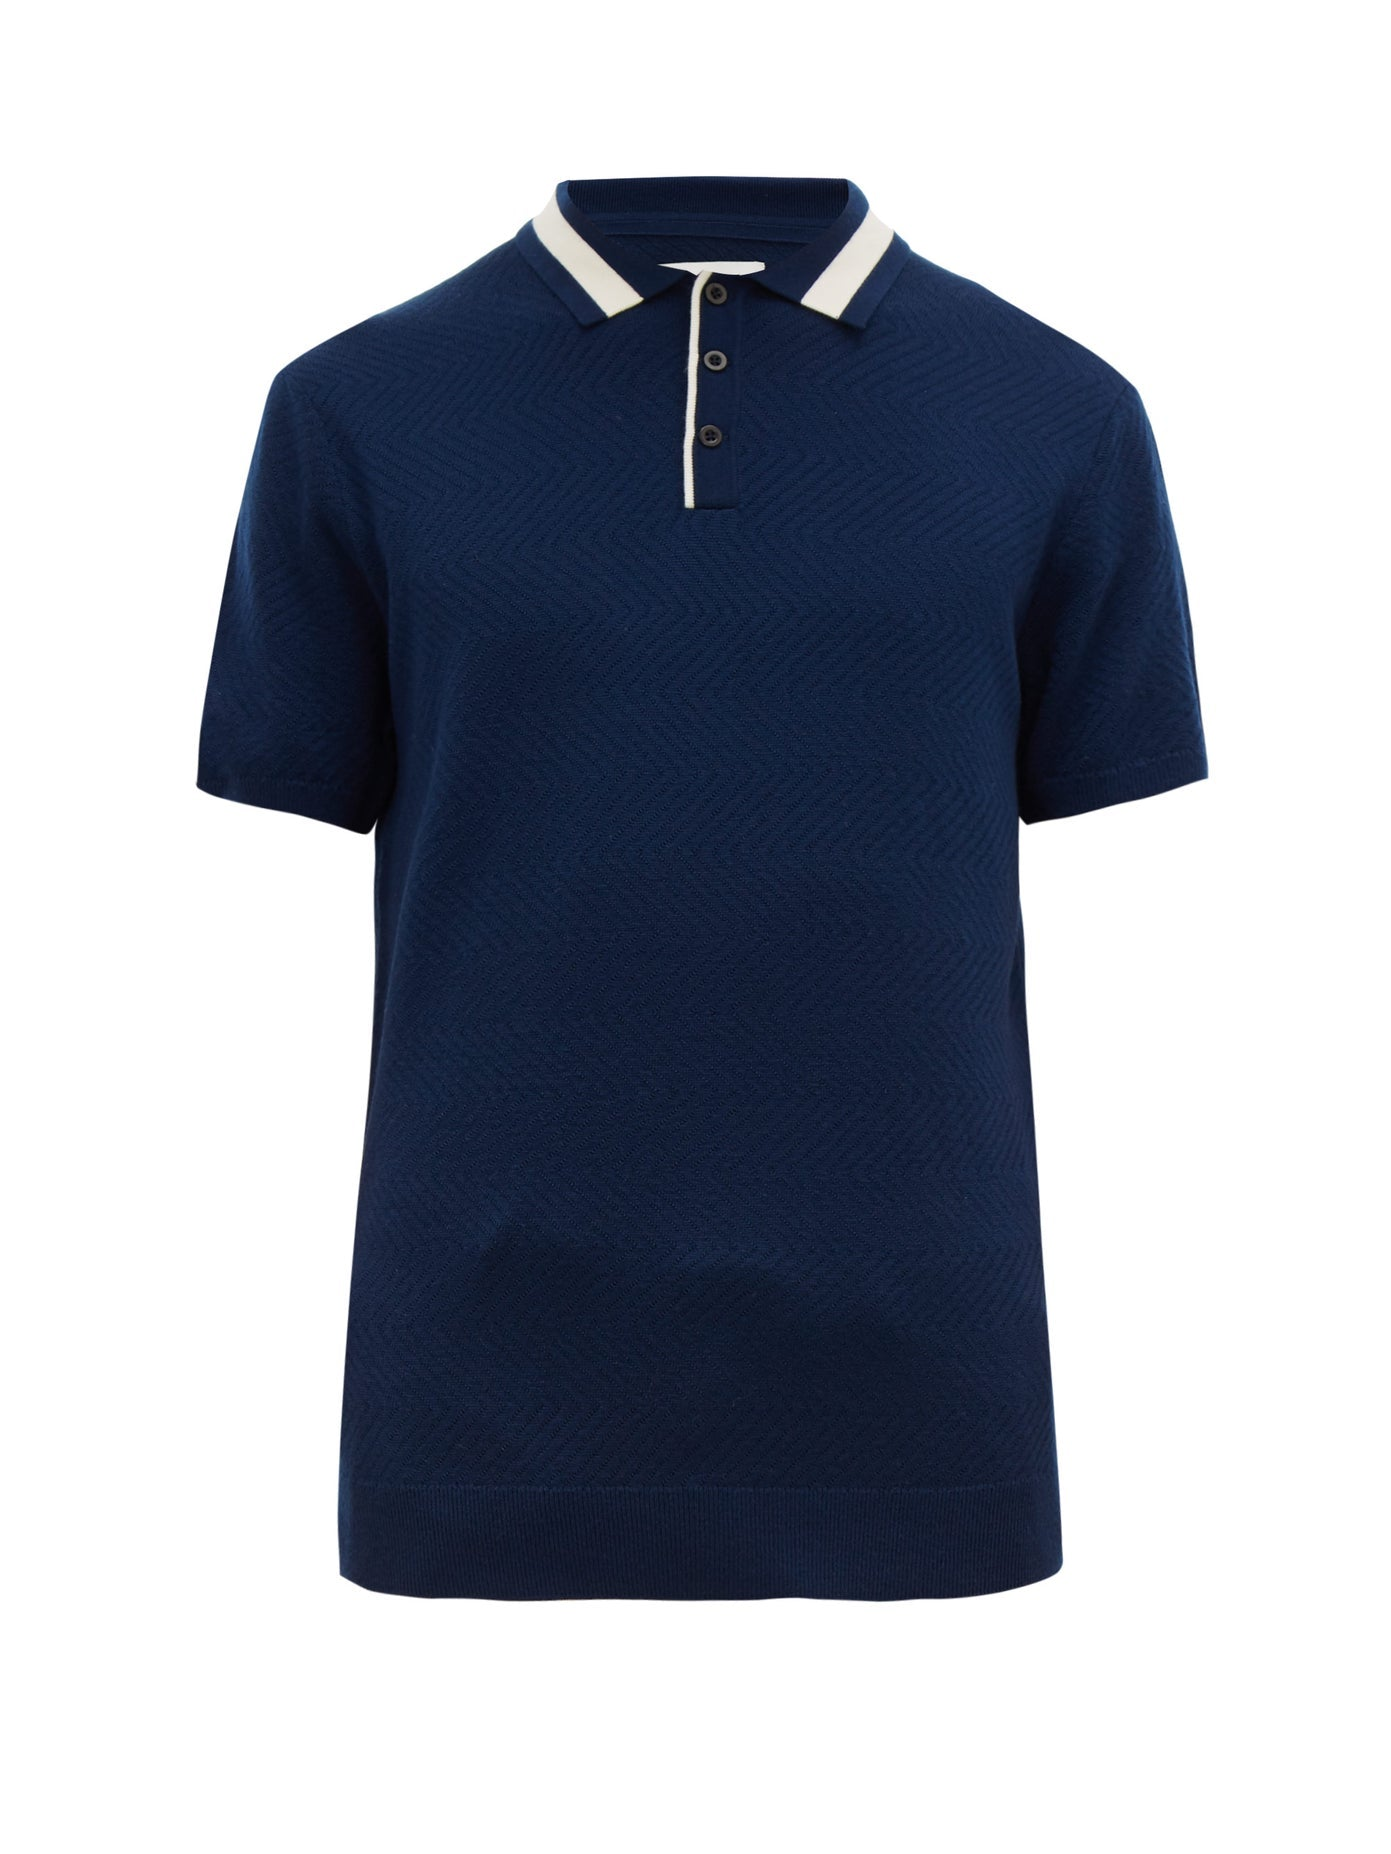 Navy Textured Polo - King & Tuckfield